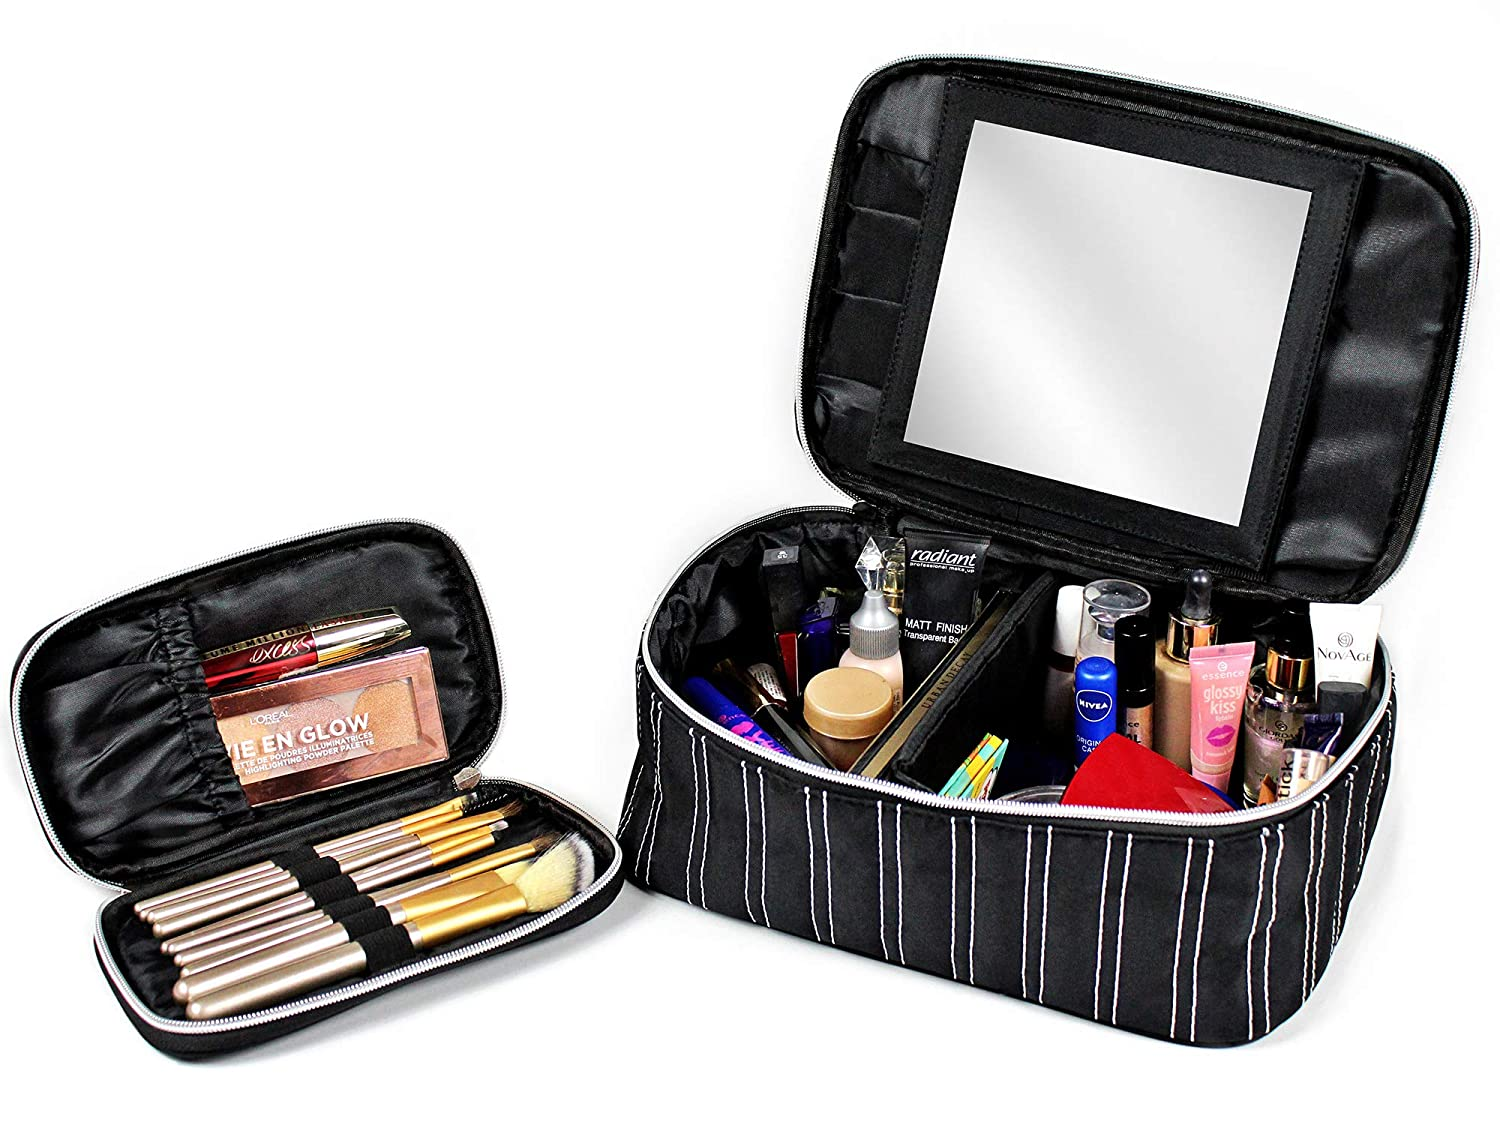 Makeup Bag With Mirror - Cosmetic Travel Train Case for Women - Toiletry - Brush Organizer Bonus by MESSALI